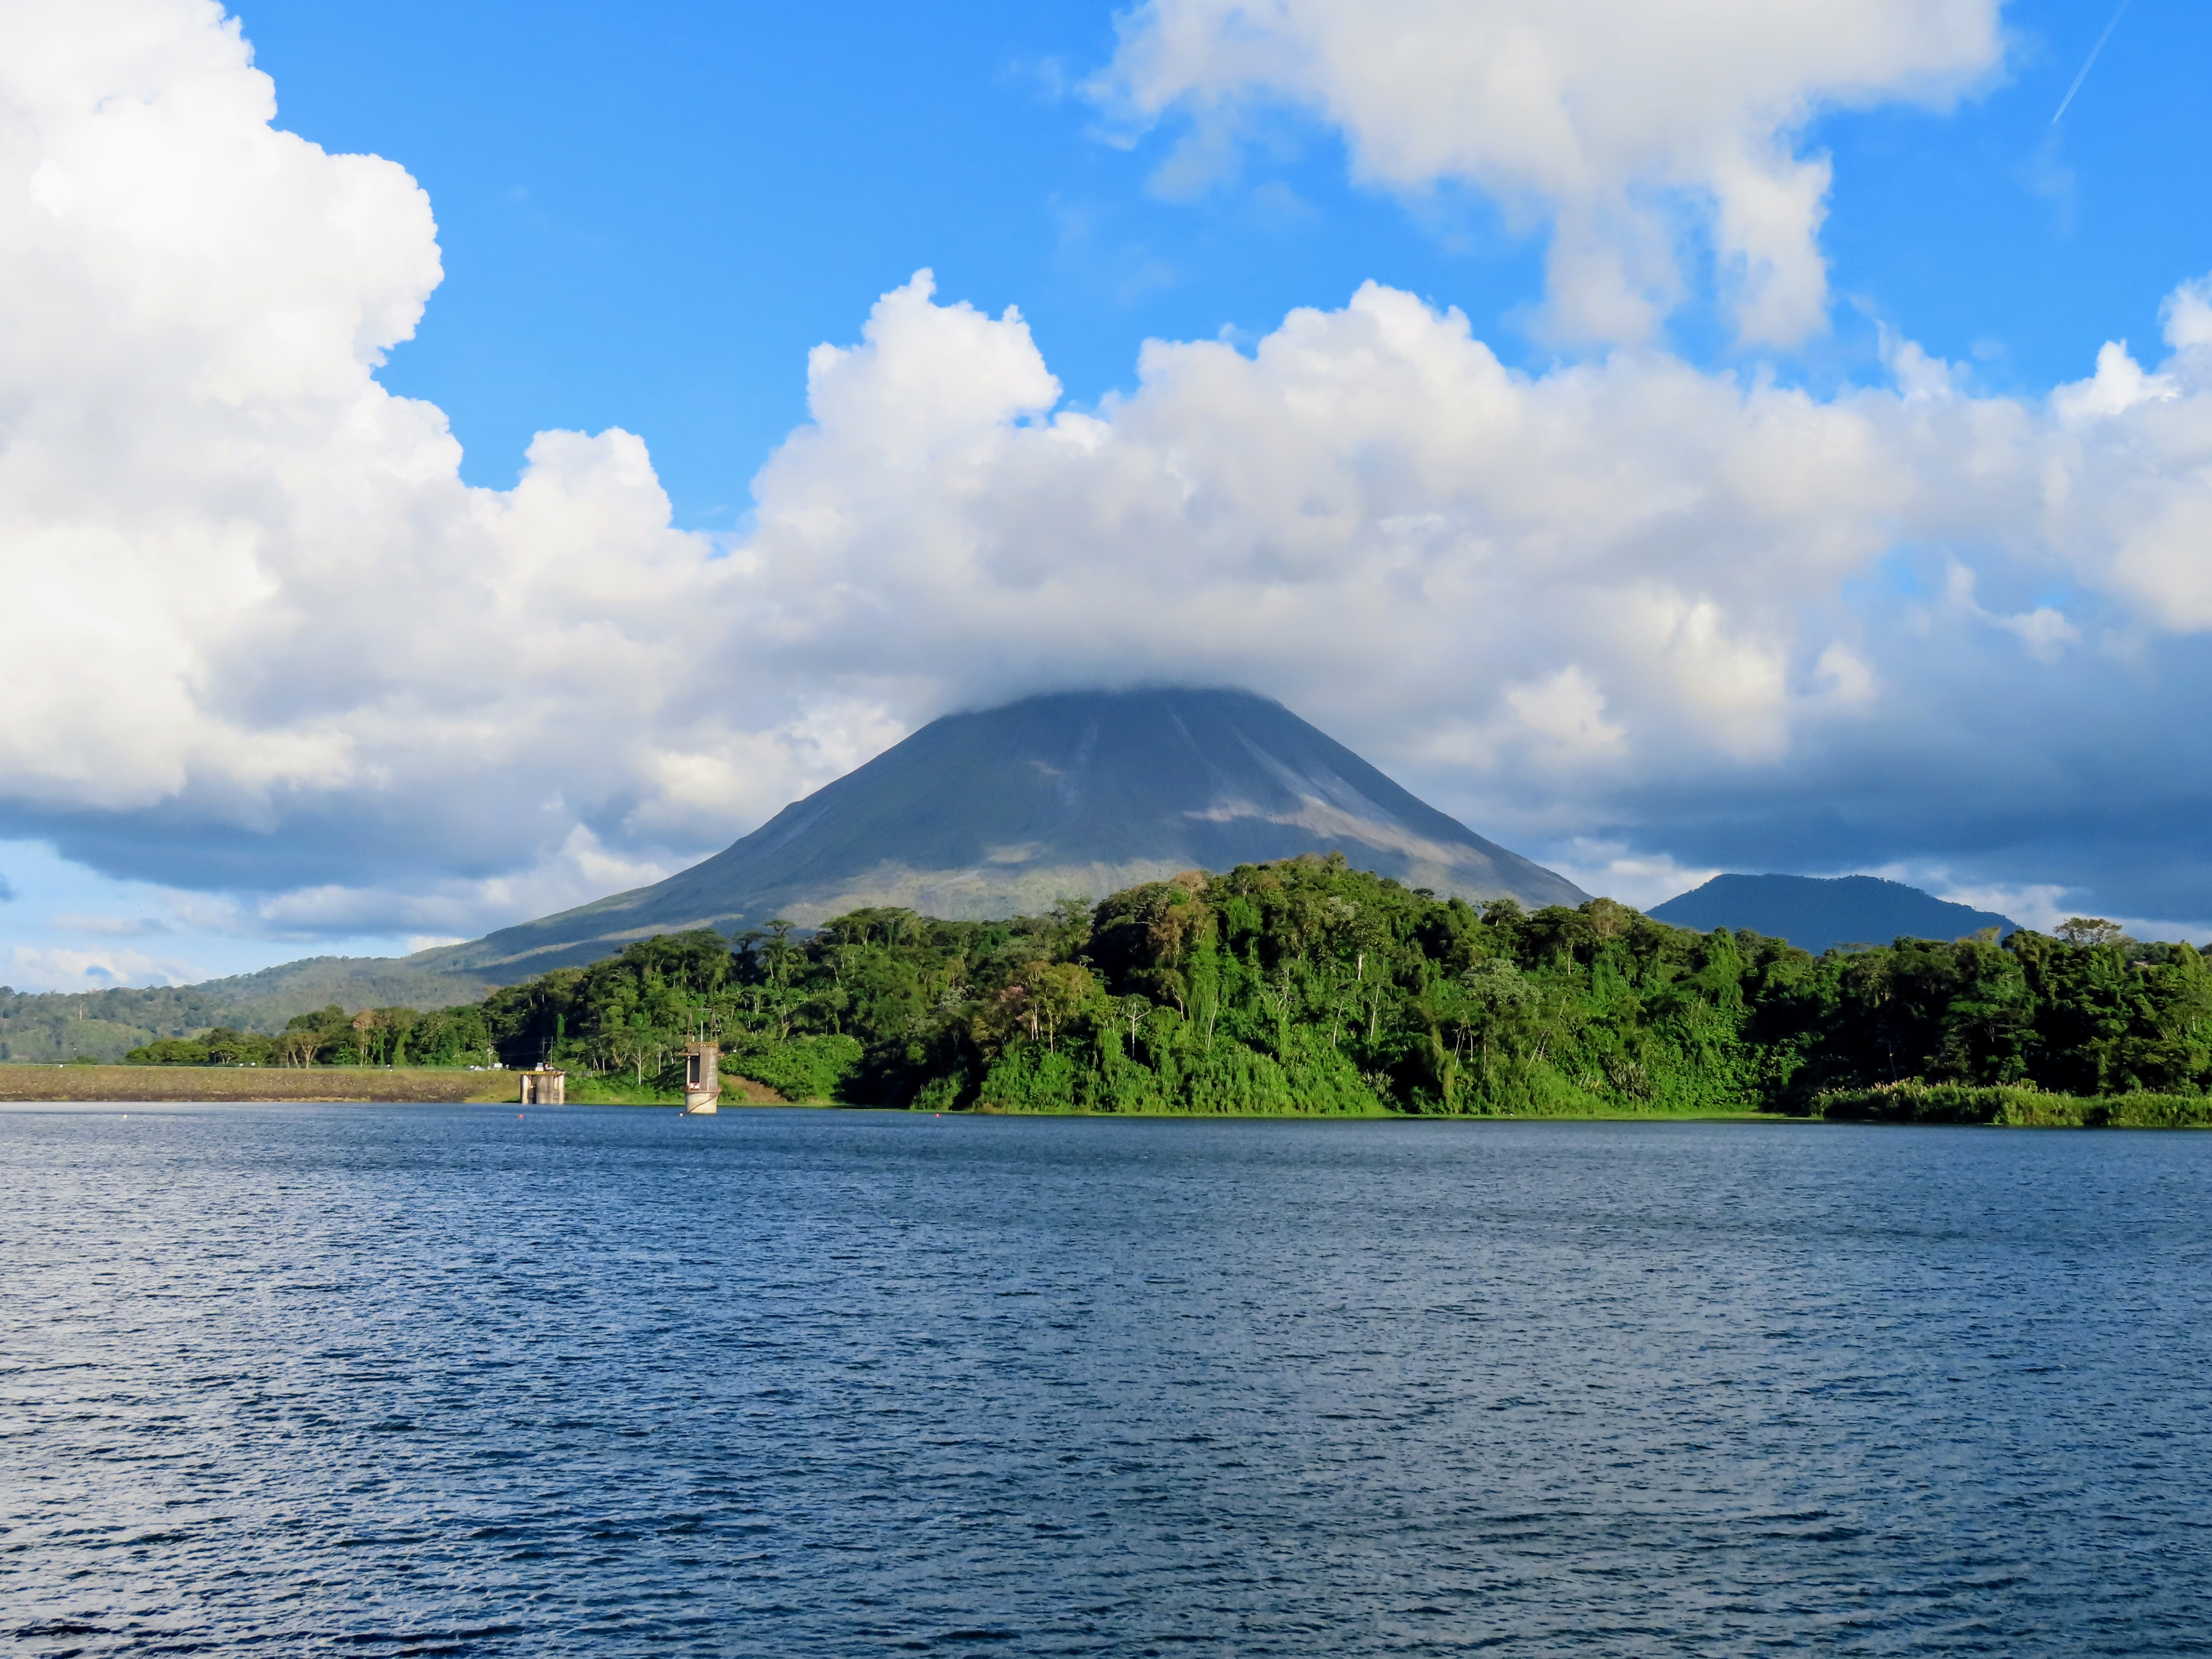 Costa Rica Travel – What to expect during COVID